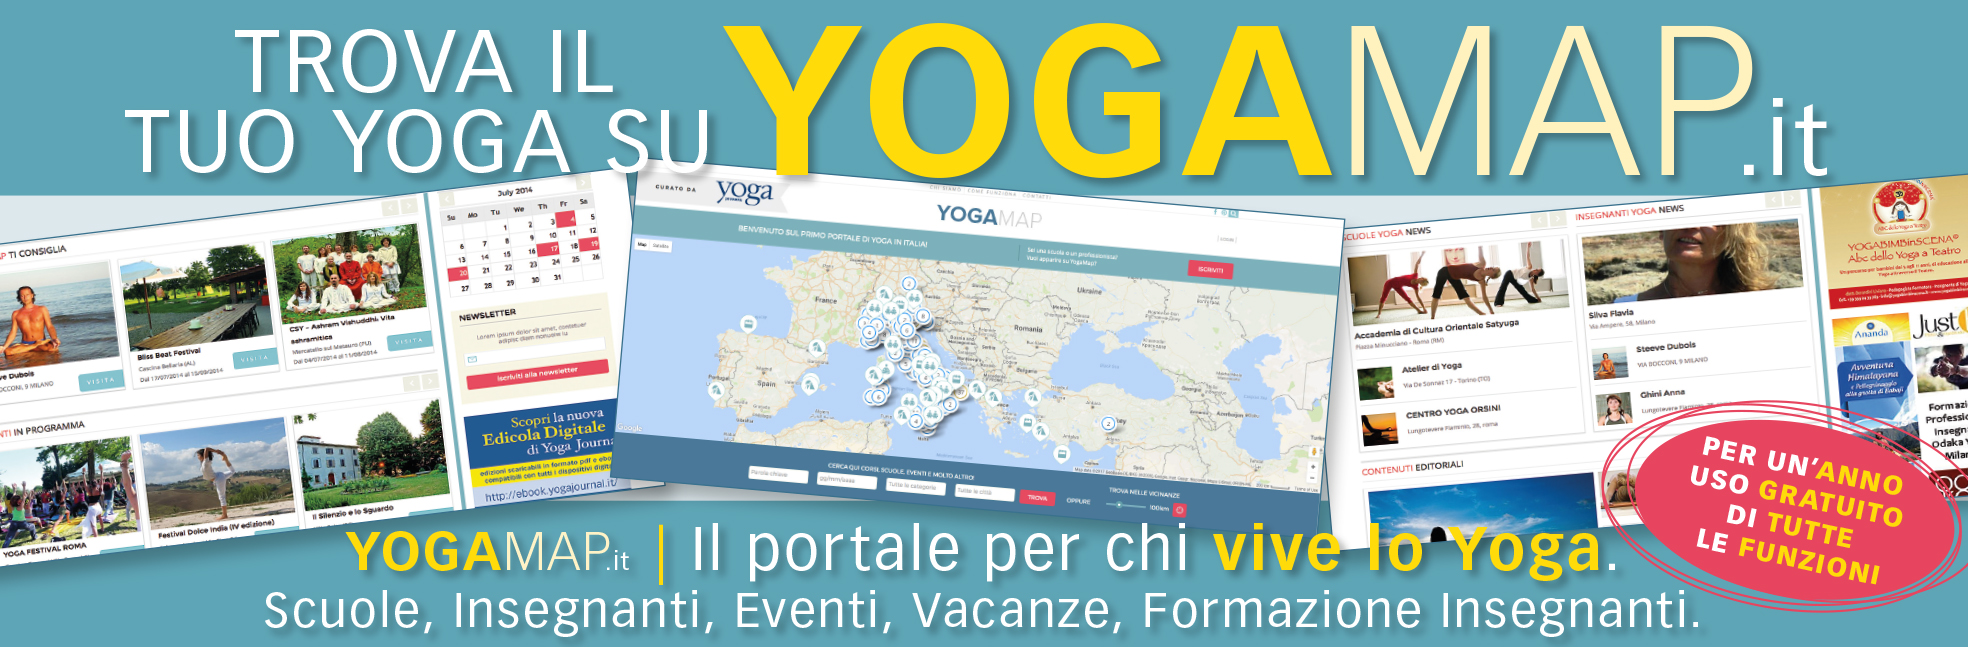 Banner_(pubb Yoga Map)05-2017.indd